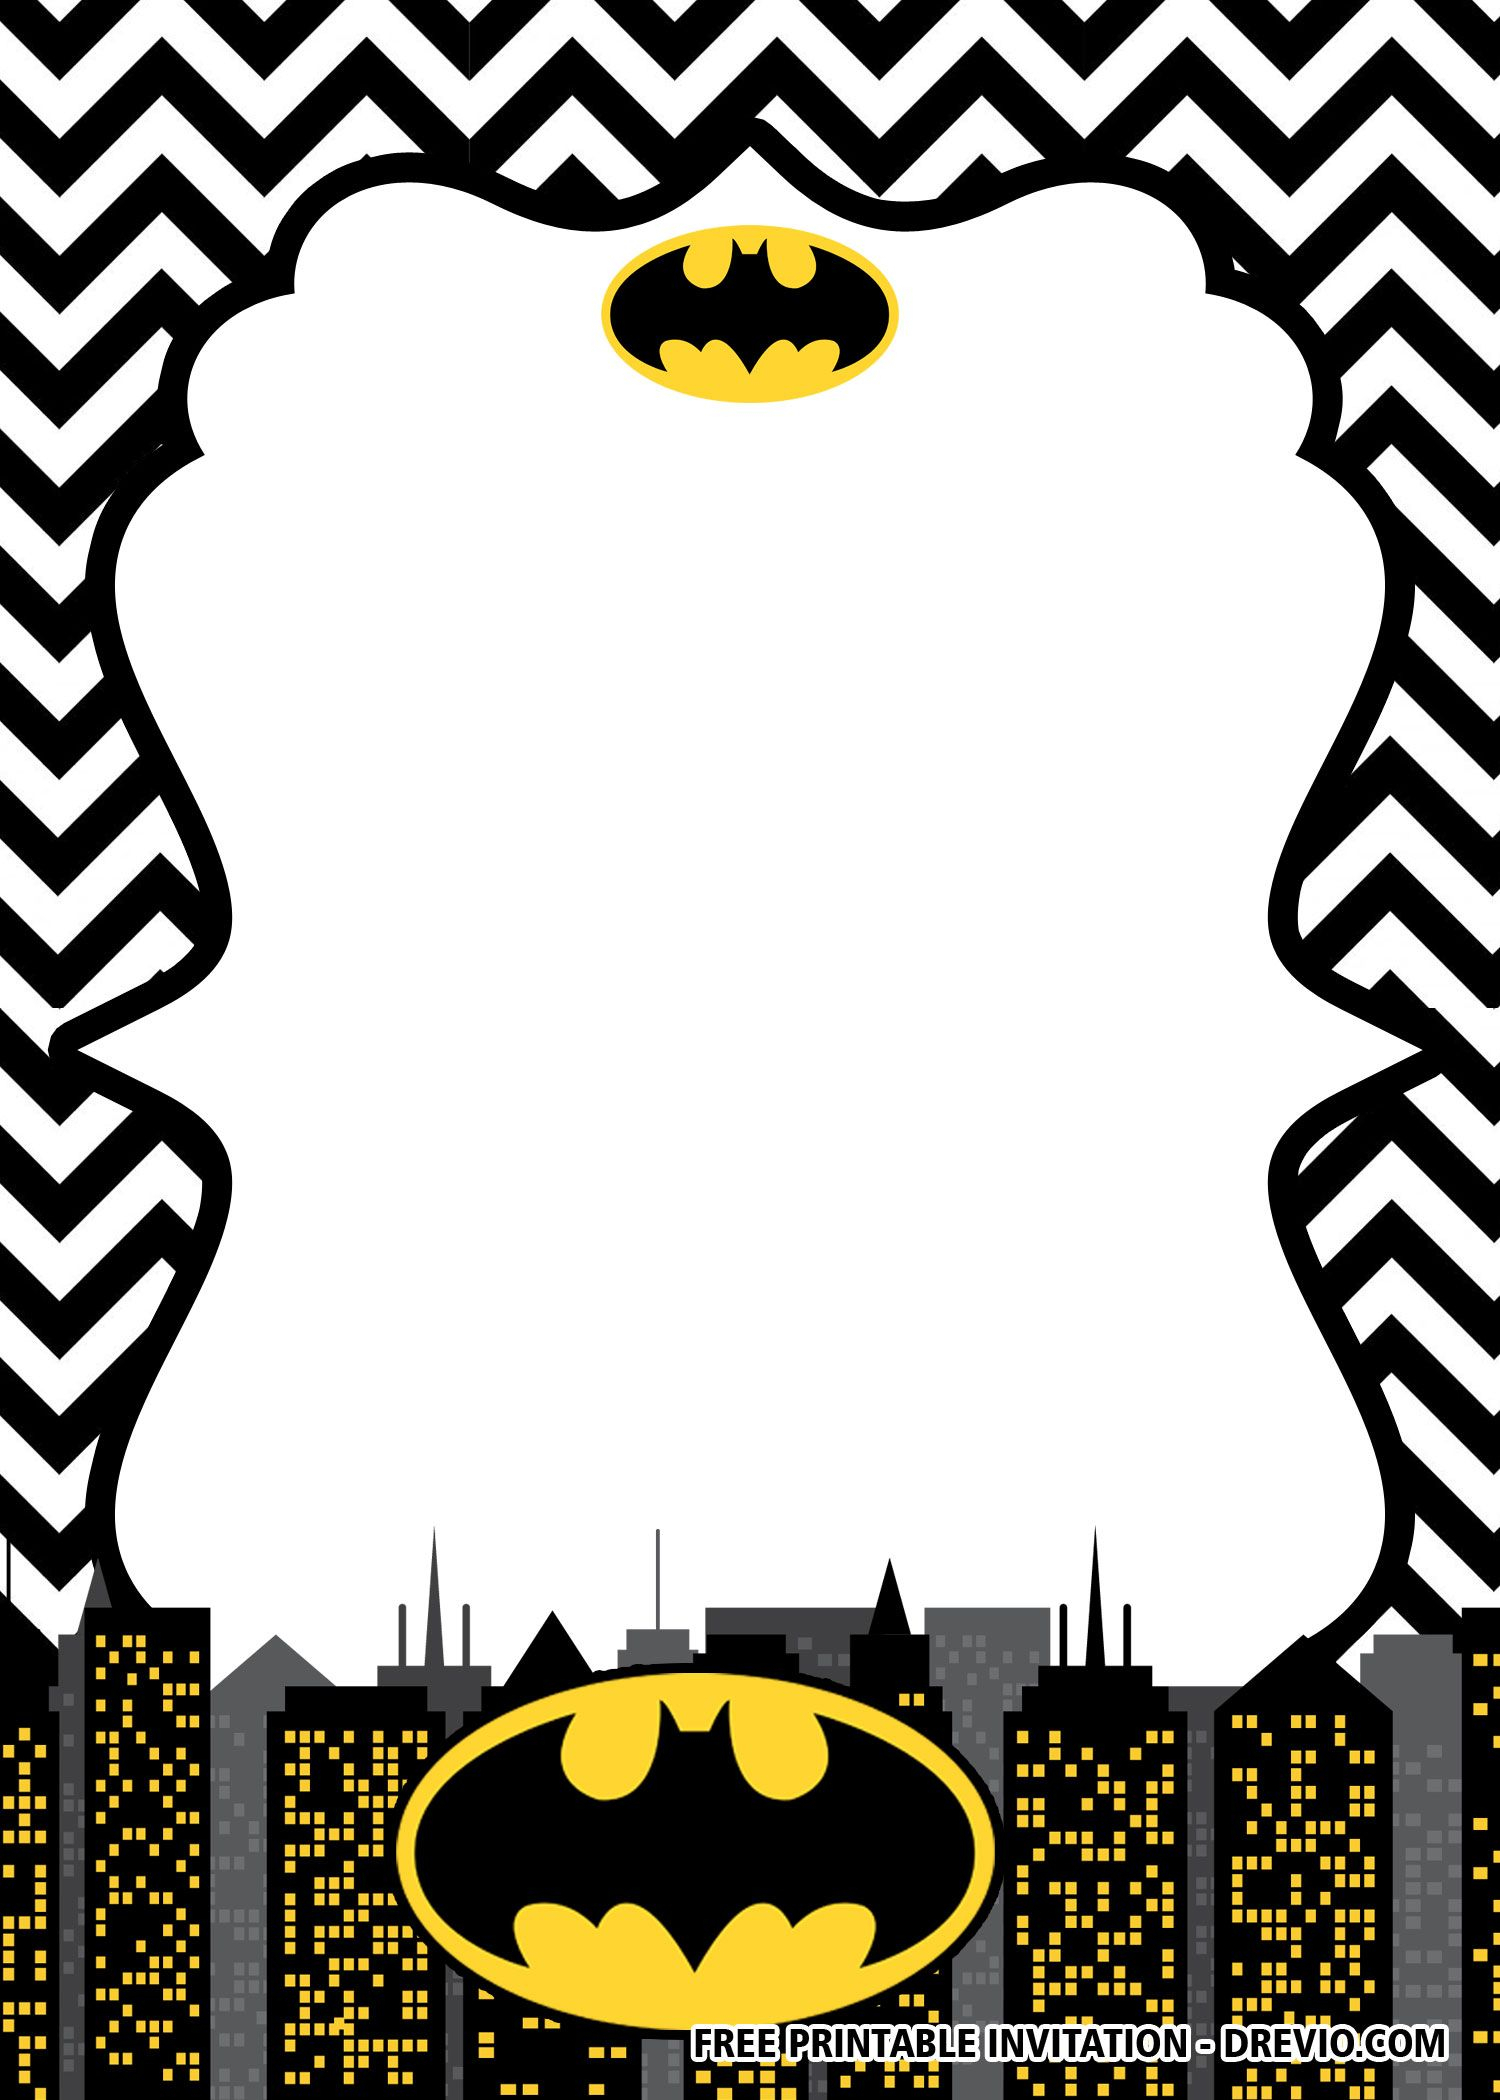 Free Printable Batman Birthday Invitation Templates | Free In Batman Birthday Card Template